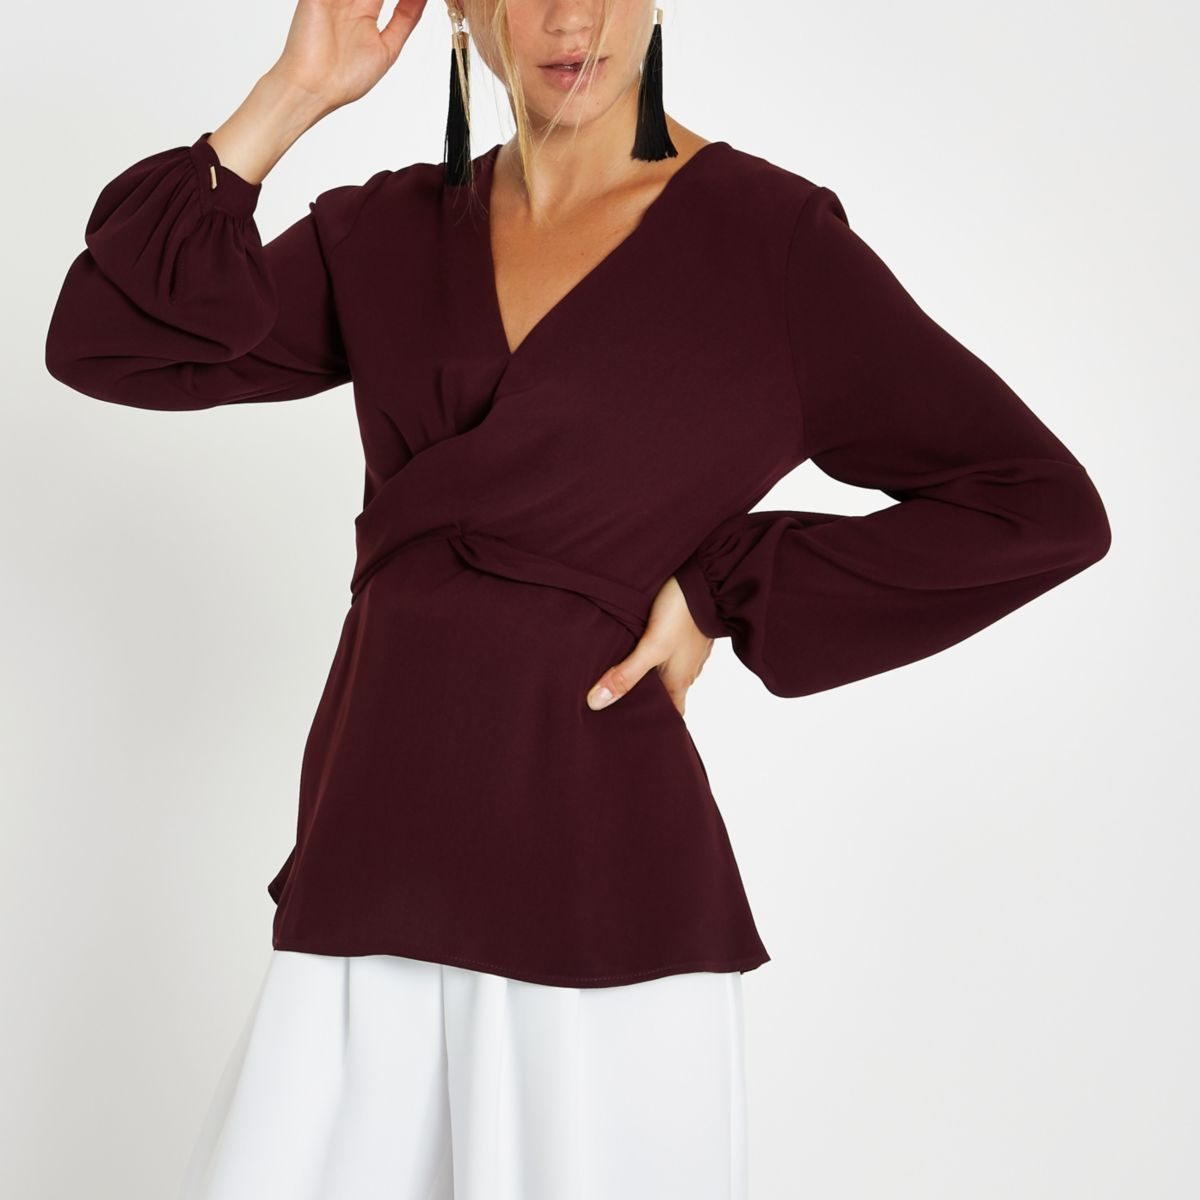 Dark red cross front tie back blouse